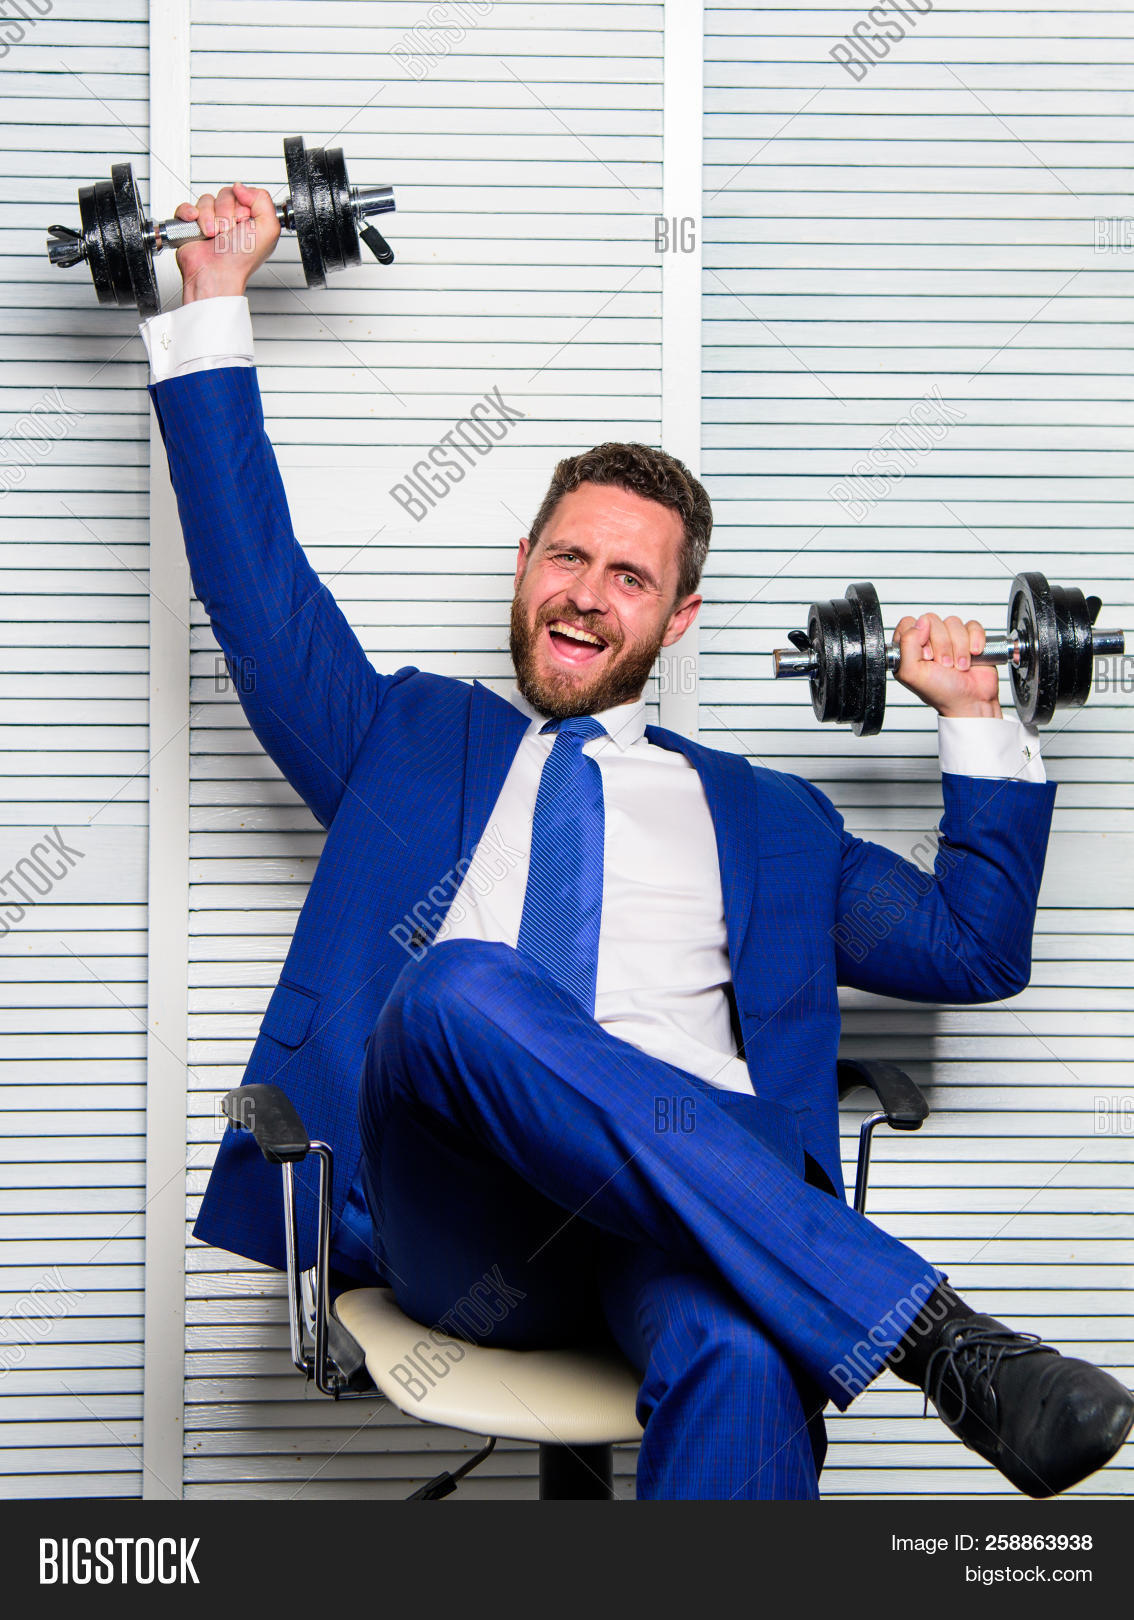 b47daab22551 Boss businessman manager raise hands with dumbbells. Sport healthy  lifestyle. Successful in sport and business